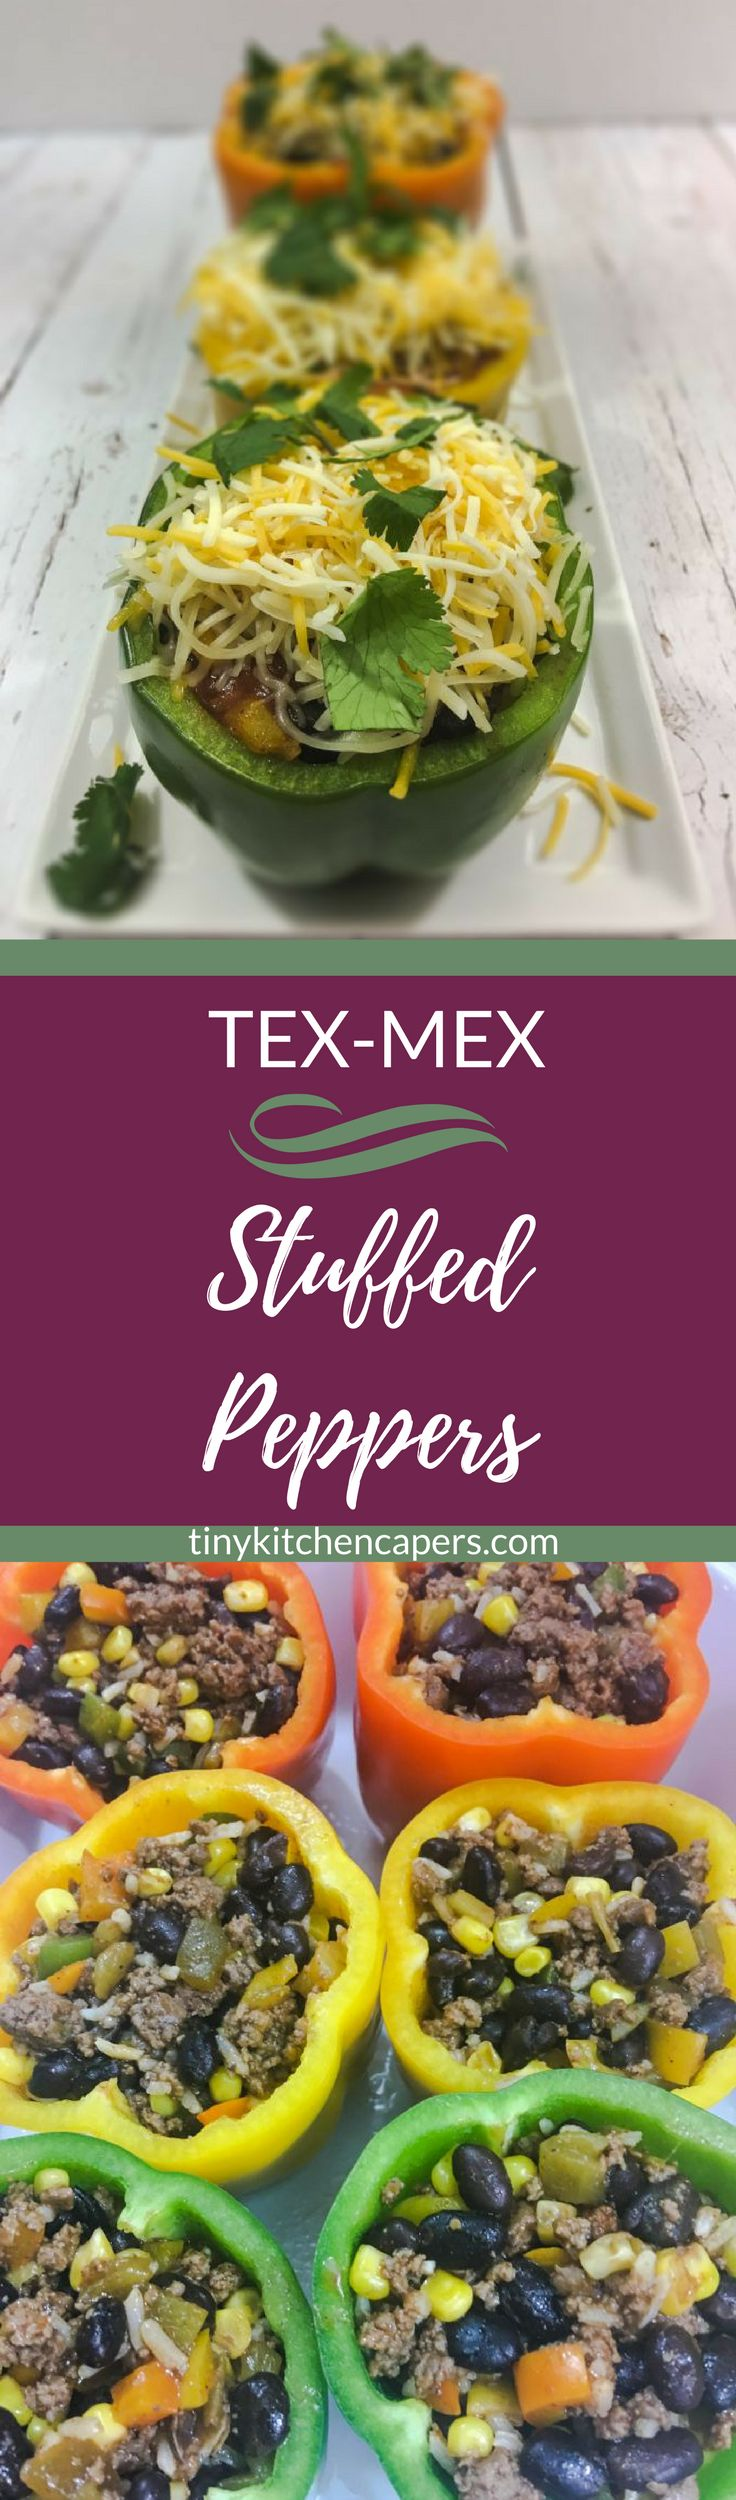 A Tex-Mex twist on stuffed peppers. Beef, black beans, corn, rice. Spiced up with green chilis, chipotle, and enchilada sauce. Oh, and lots of cheese | tinykitchencapers.com